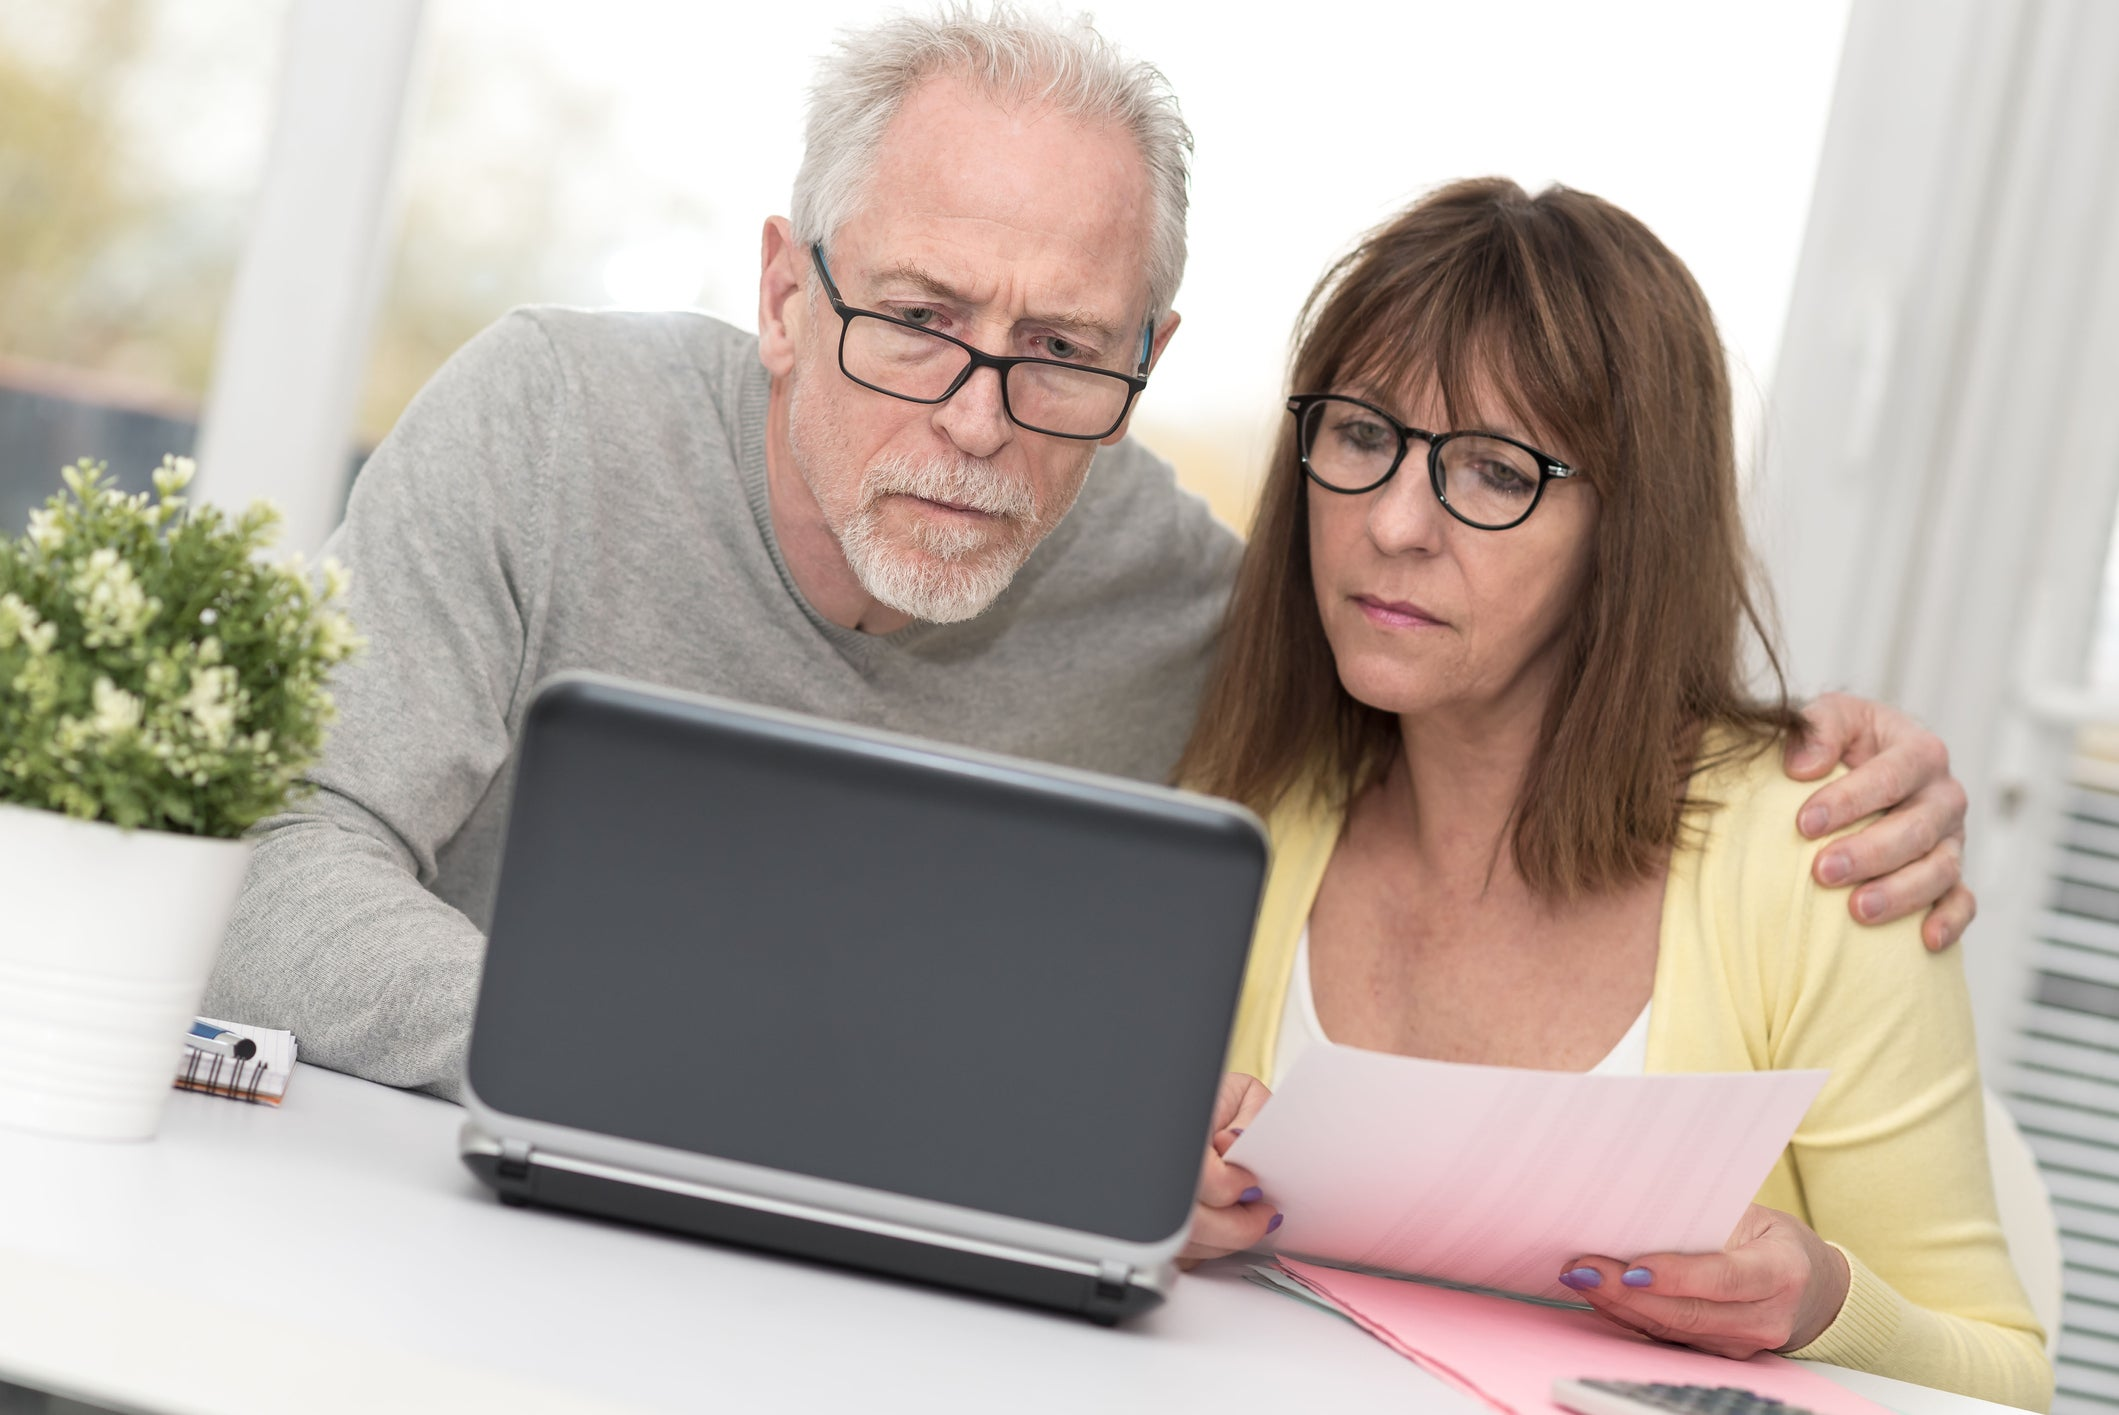 Older Americans Are Missing Out on This Valuable Retirement Savings Plan